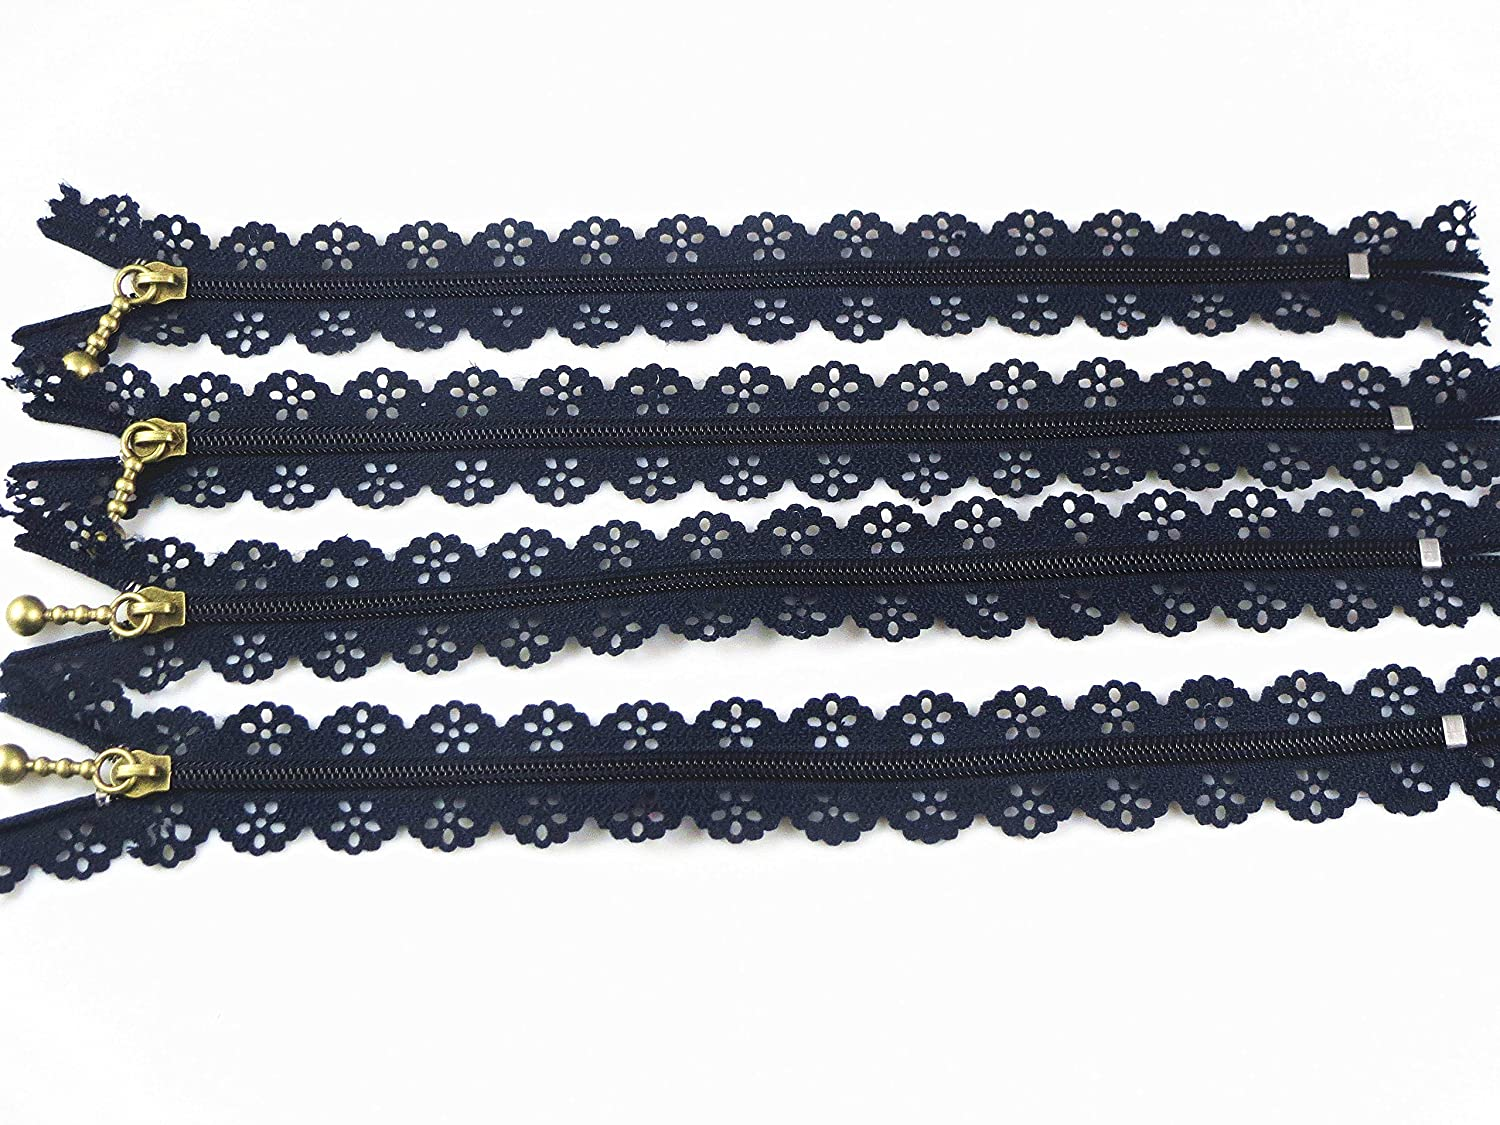 YAKA Quality Novelty Full Length 24cm 9 inch DIY Nylon Coil Flower Zipper Lace Zippers for DIY Sewing Tailor Craft Bed Bag, 24 Pcs (Mix) 4337006913